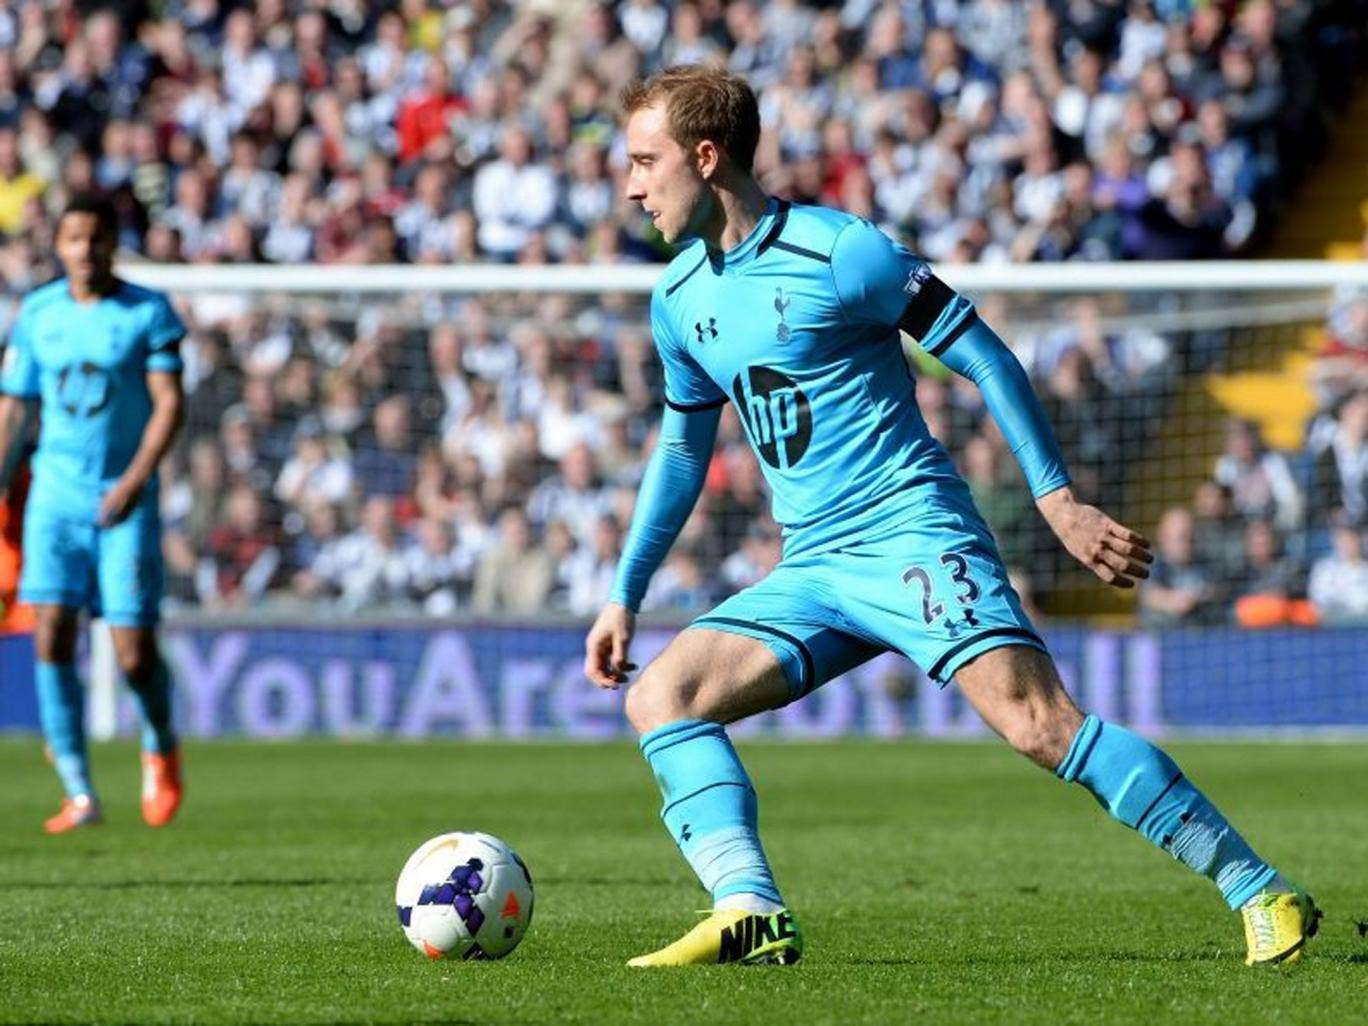 Christain Eriksen of Tottenham in action during the Premier League match between West Bromwich Albion and Tottenham Hotspur at The Hawthorns (Getty)